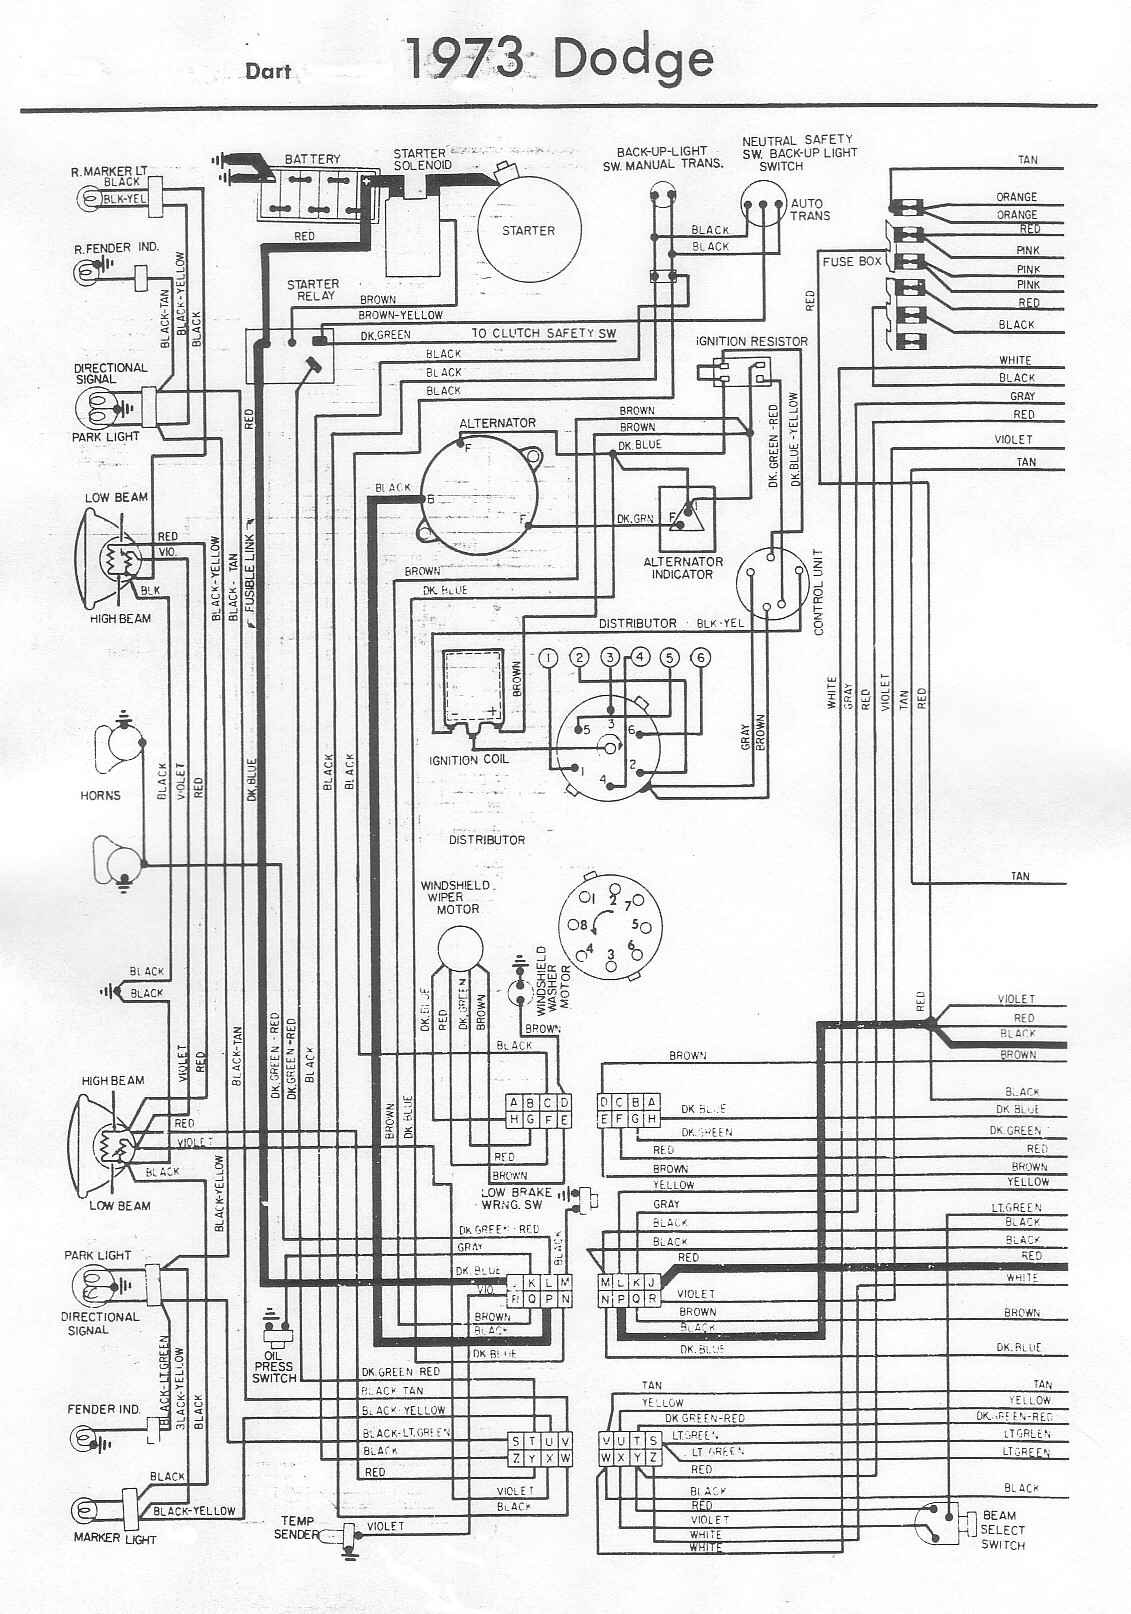 1973 Dodge Dart Wiring – Bob's Garage Library